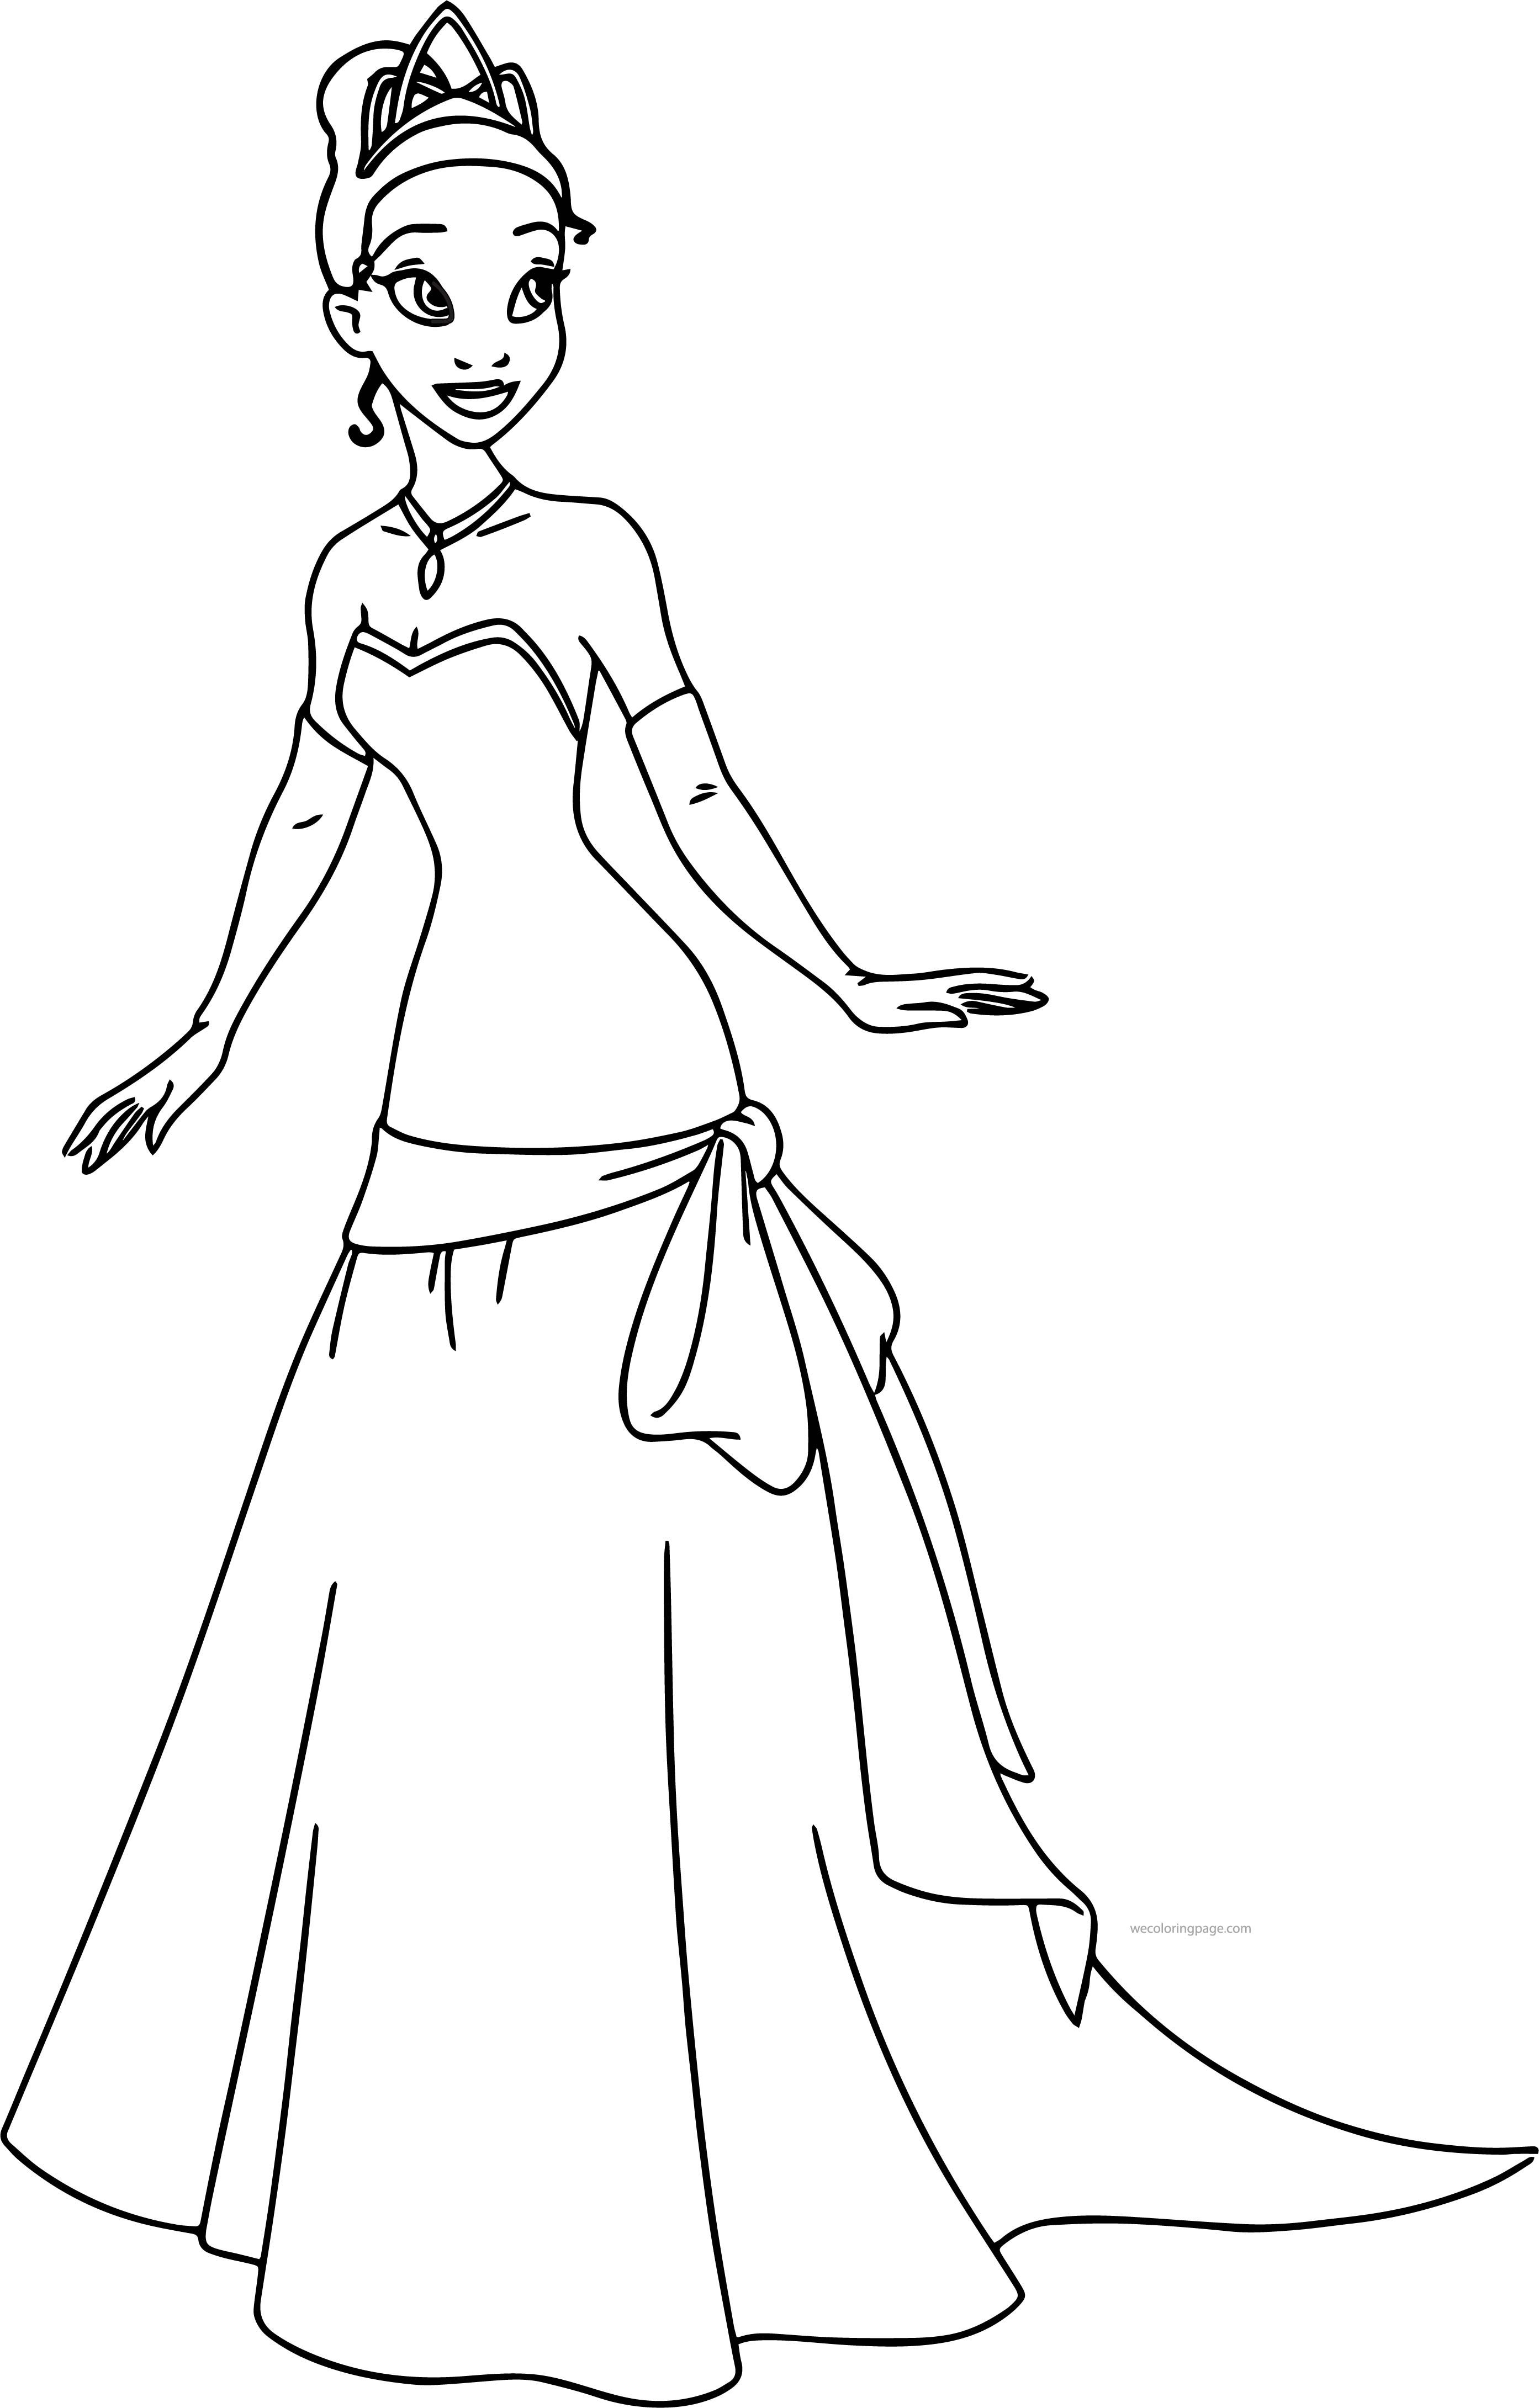 Cool Disney The Princess And The Frog Perfect Tiana Dress Coloring